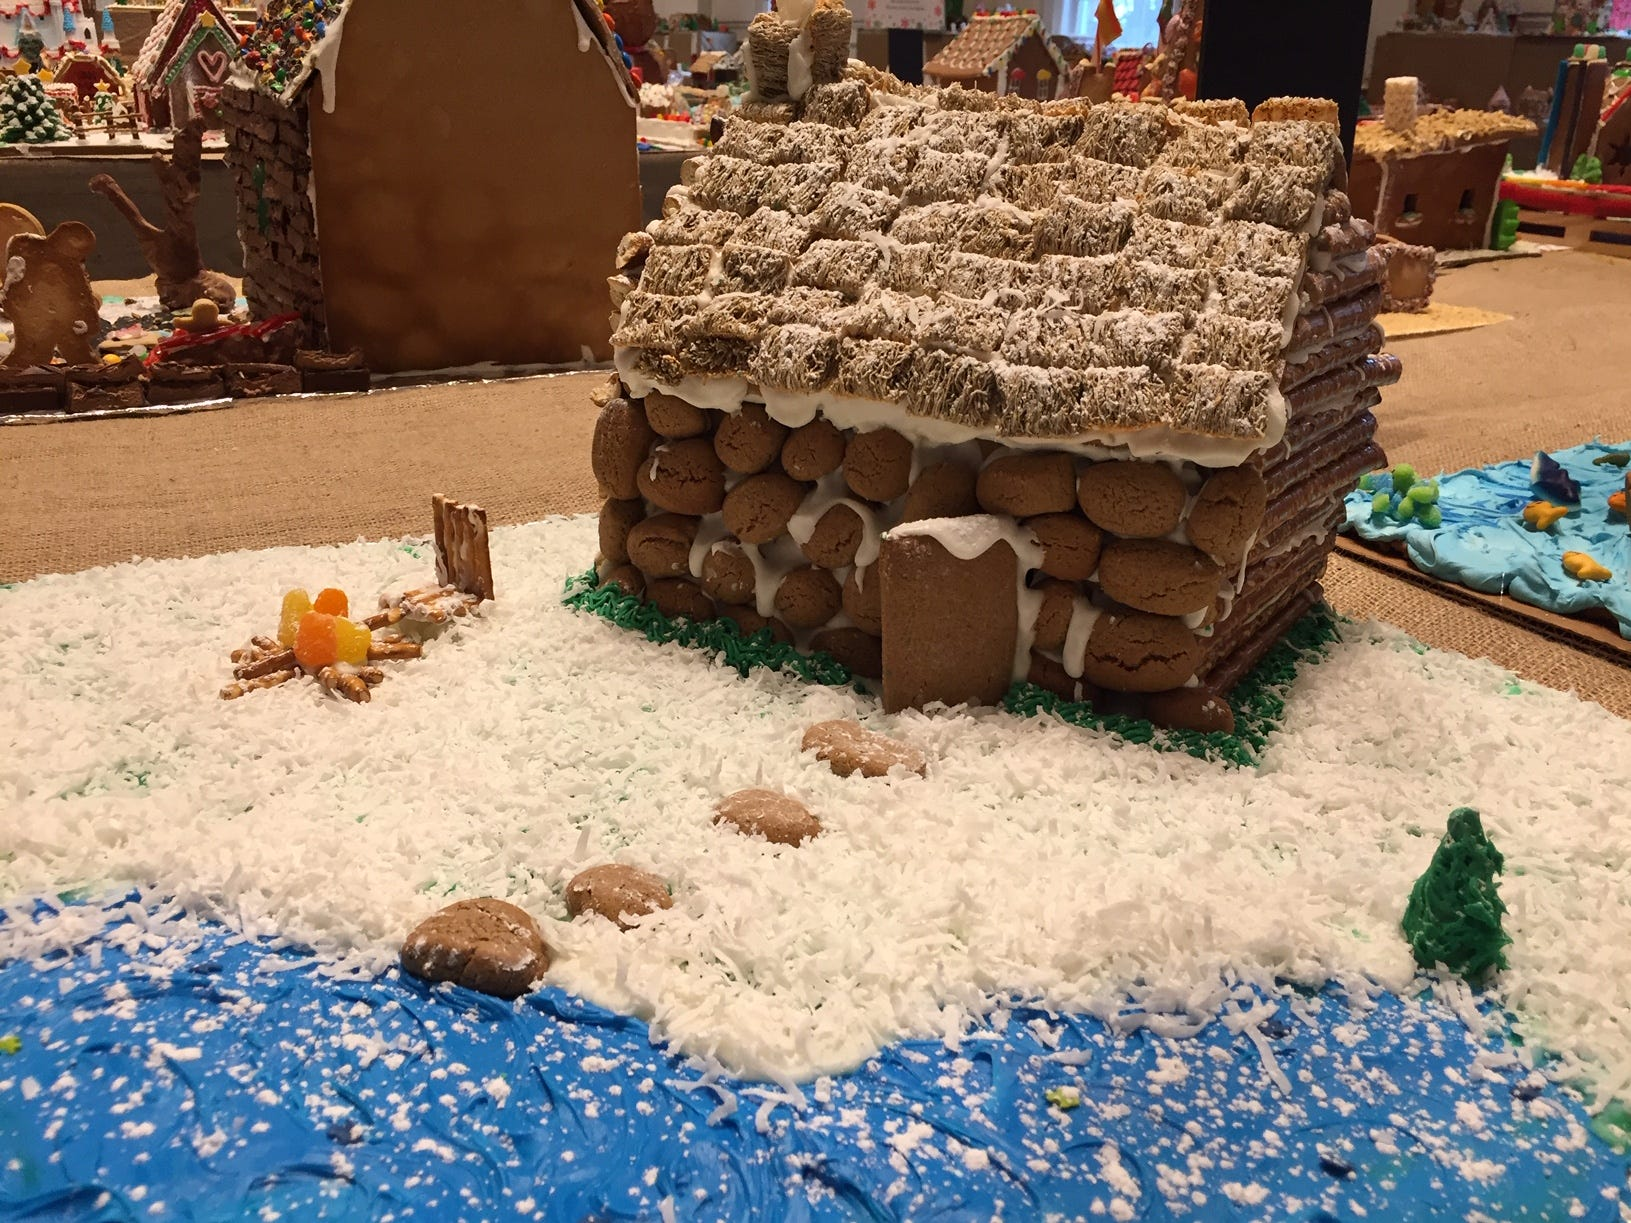 """Log Cabin"" by A. Barroqueiro of Denville at the 2018 Gingerbread Wonderland at the Frelinghuysen Arboretum. Family category."